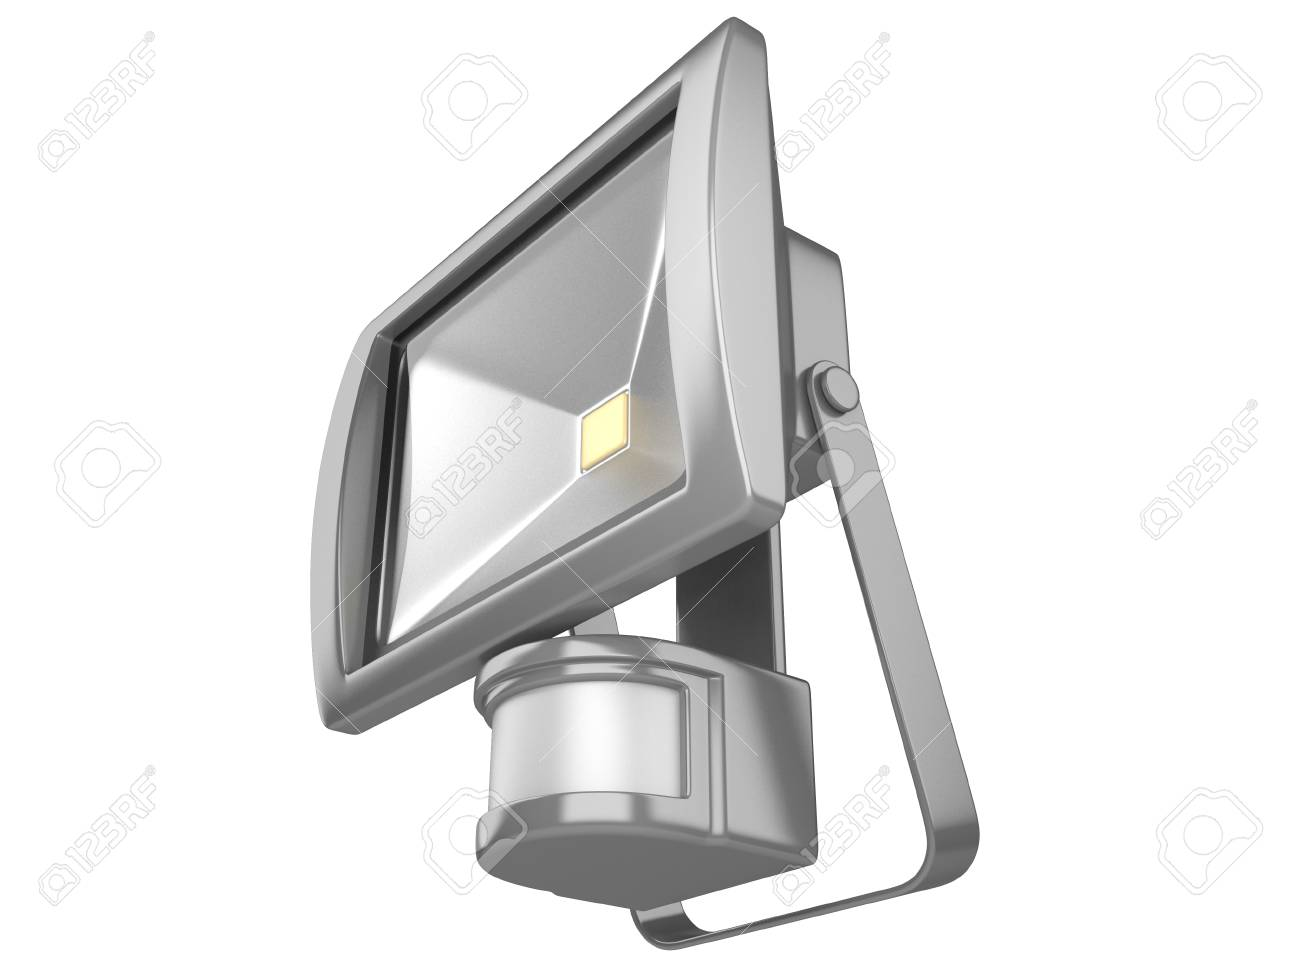 A LED waterproof spotlight with motion Sensor isolated on white background. - 55501597